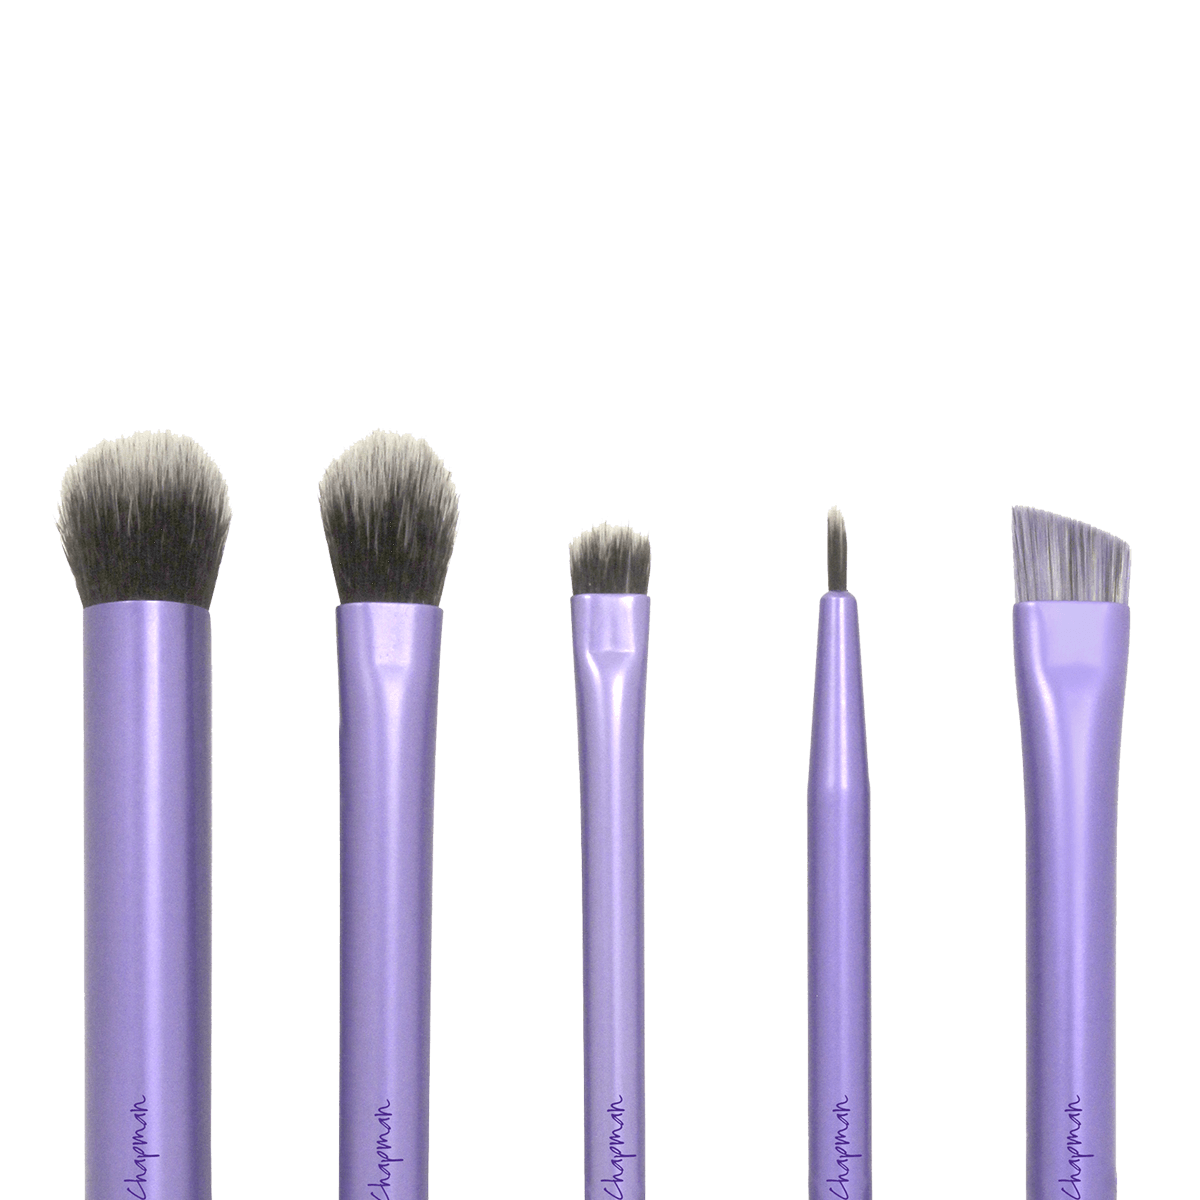 Real Techniques 5Piece Starter Set for Eyes Walmart C